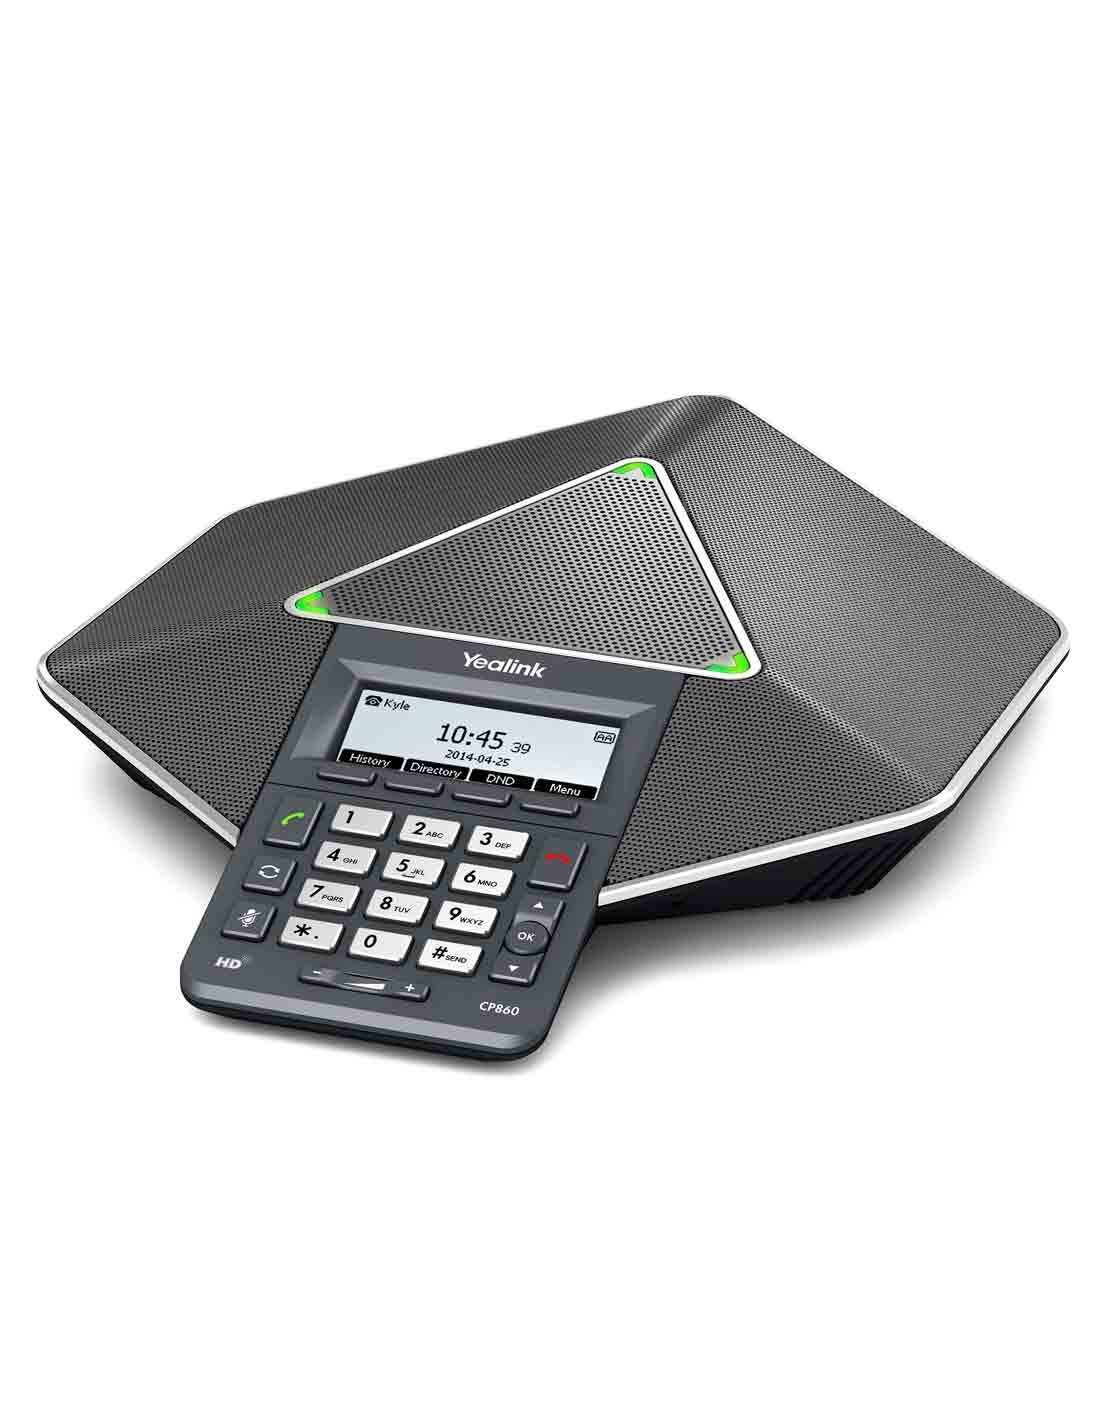 Yealink CP860 IP Conference Phone Buy Online at a Cheap Price in Dubai UAE